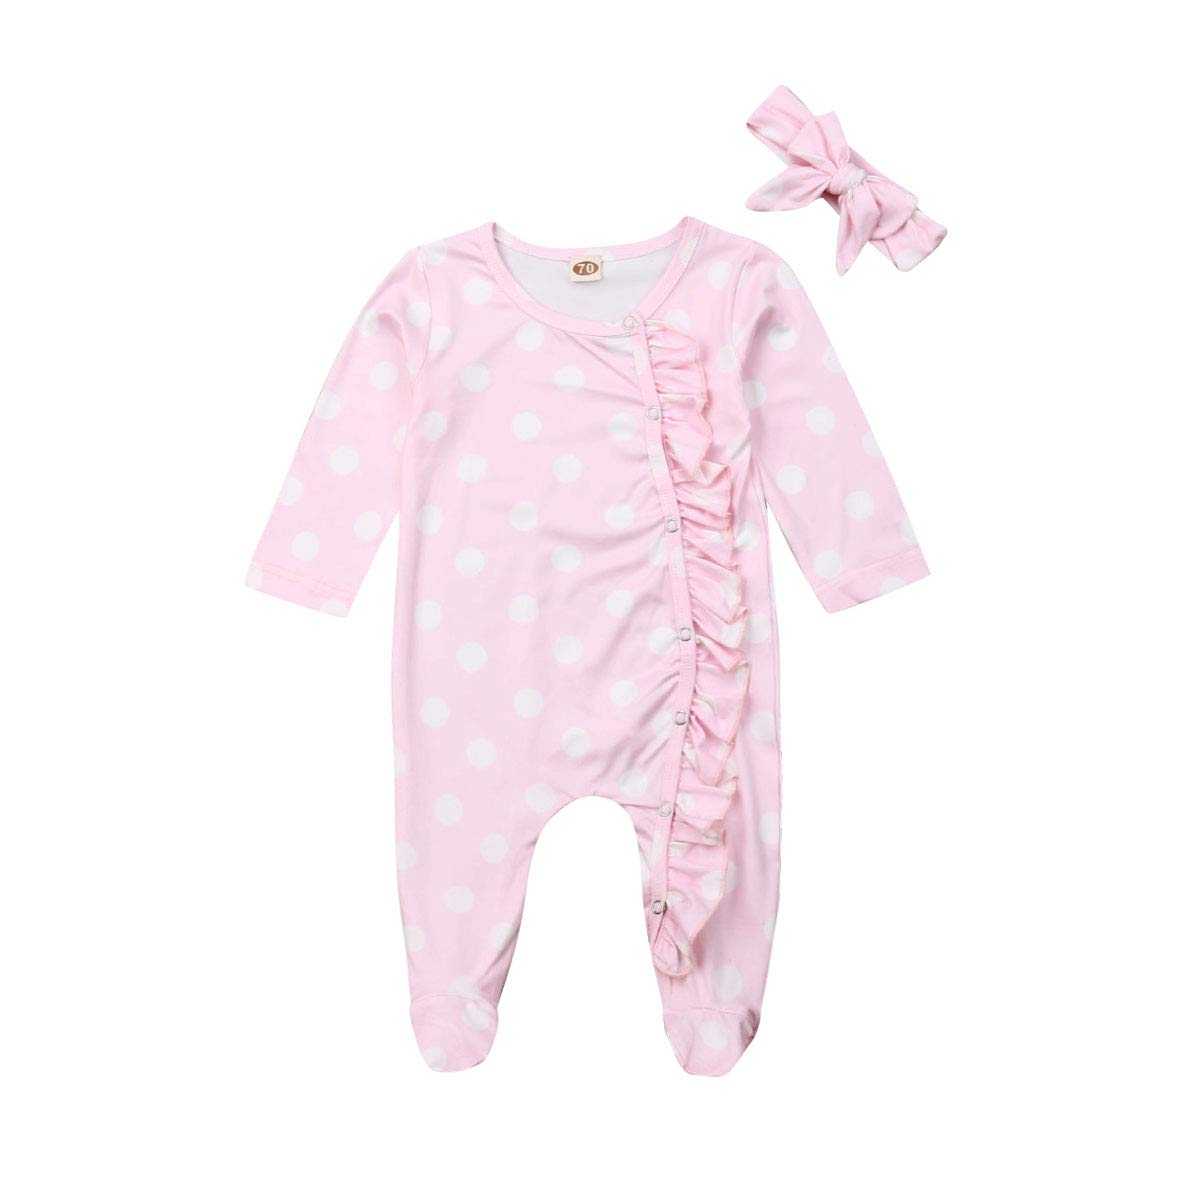 Baby Girls Boys Pajamas Footed Sleeper Long Sleeve Ruffle Jumpsuit with Headband Clothes Set Cotton Romper Bodysuit